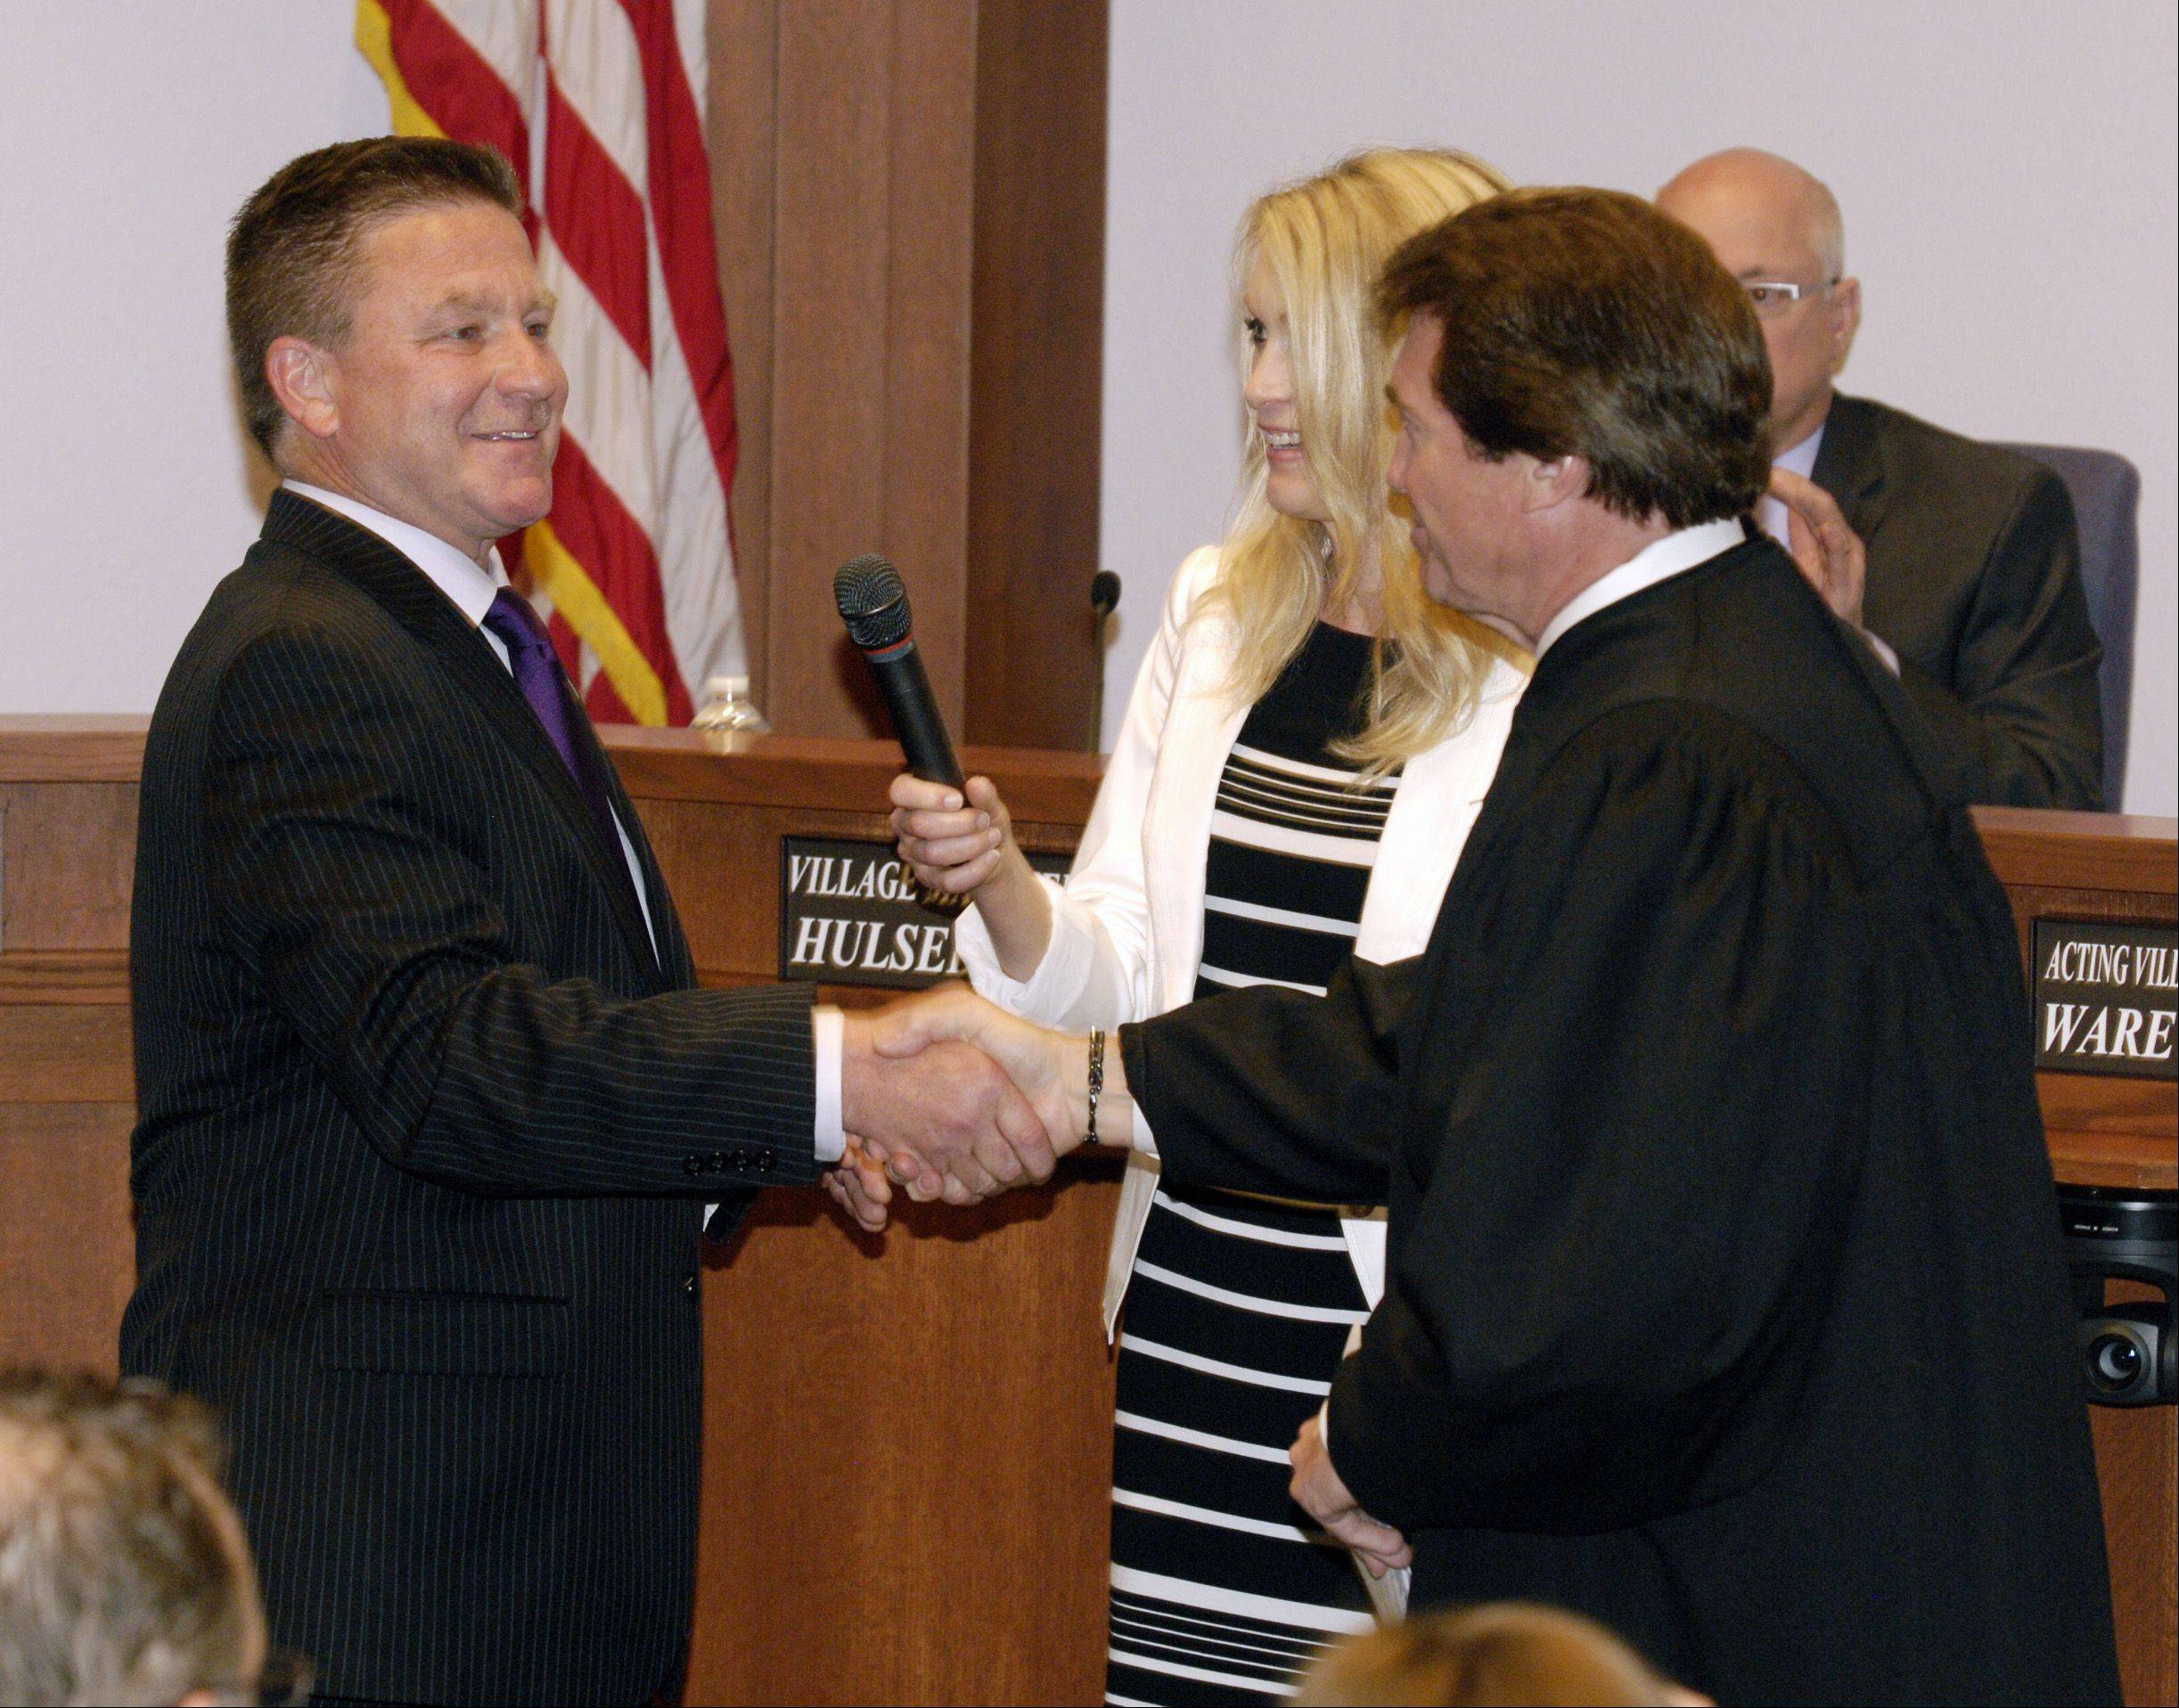 Lombard Village President Keith Giagnorio shakes hands with DuPage County Judge Patrick O'Shea after Giagnorio was sworn into his new role Thursday night.